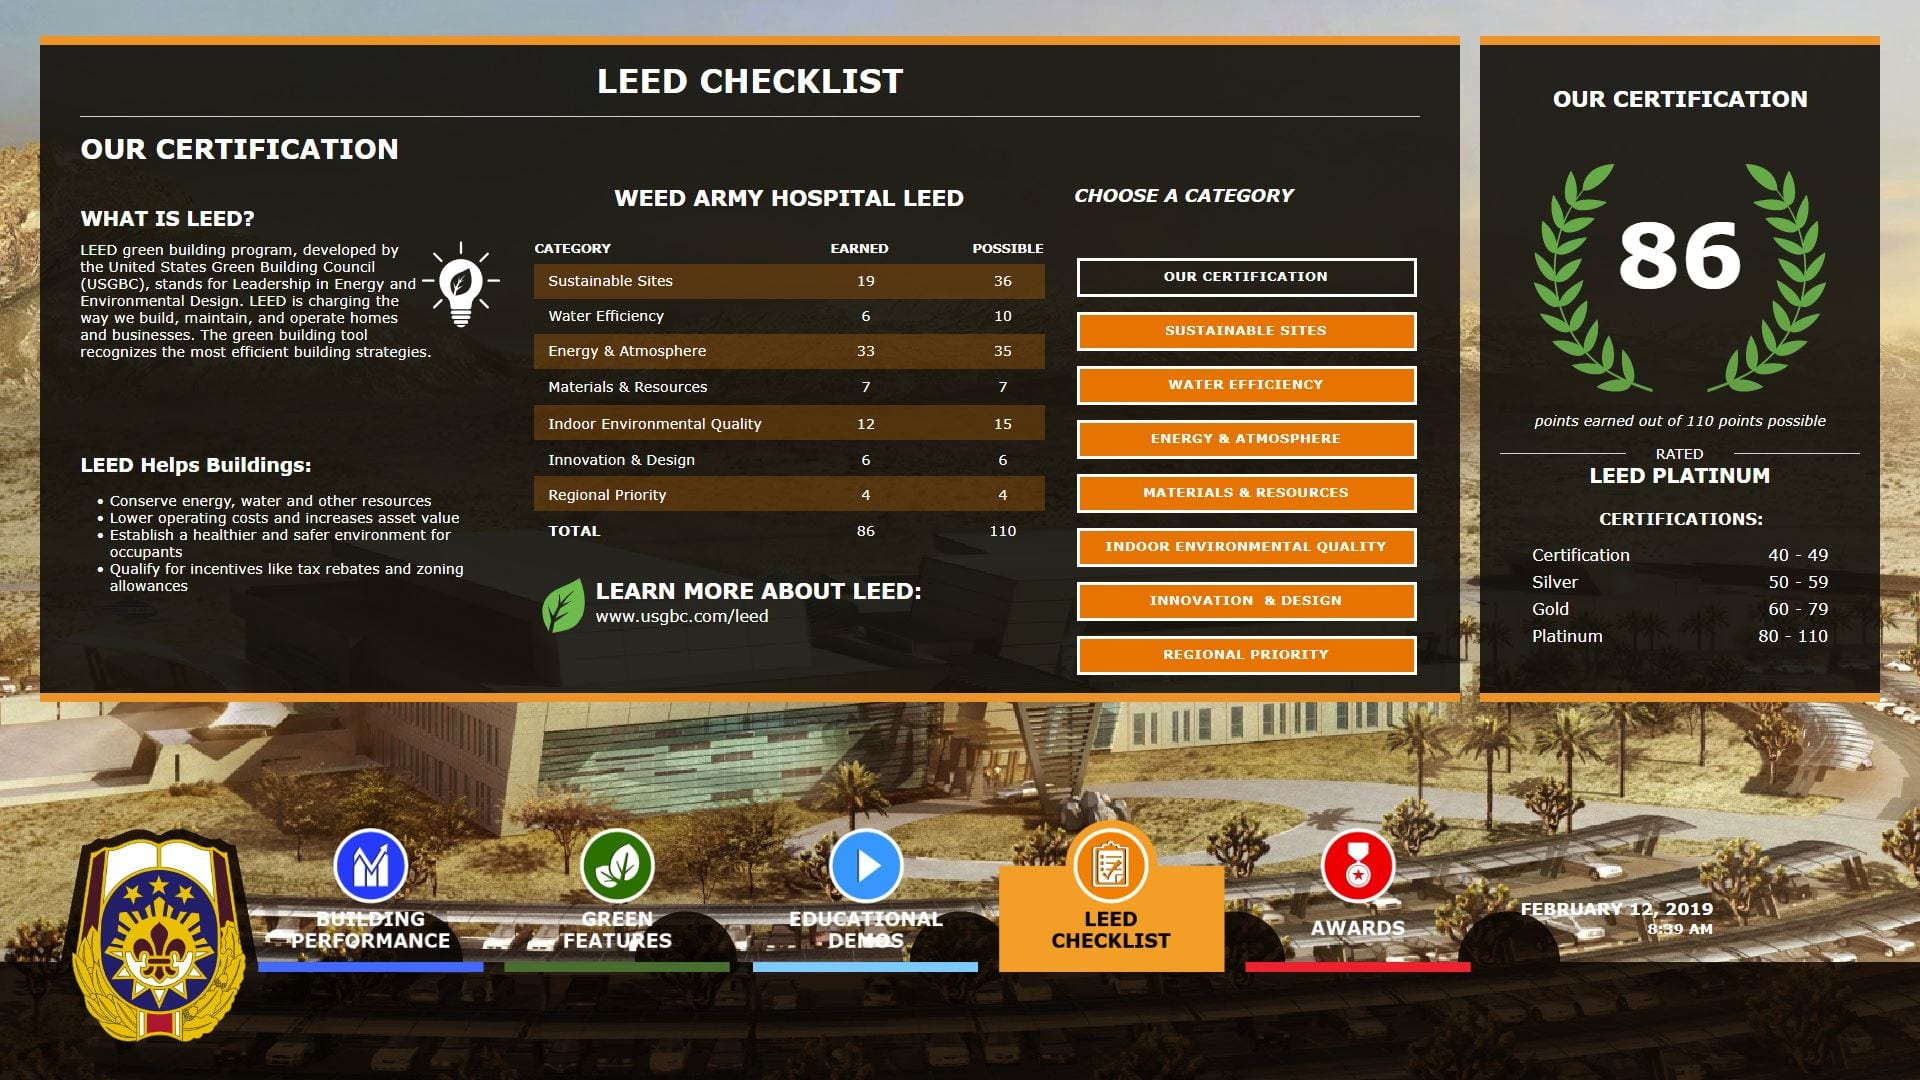 LEED Checklist for EEED v6 government